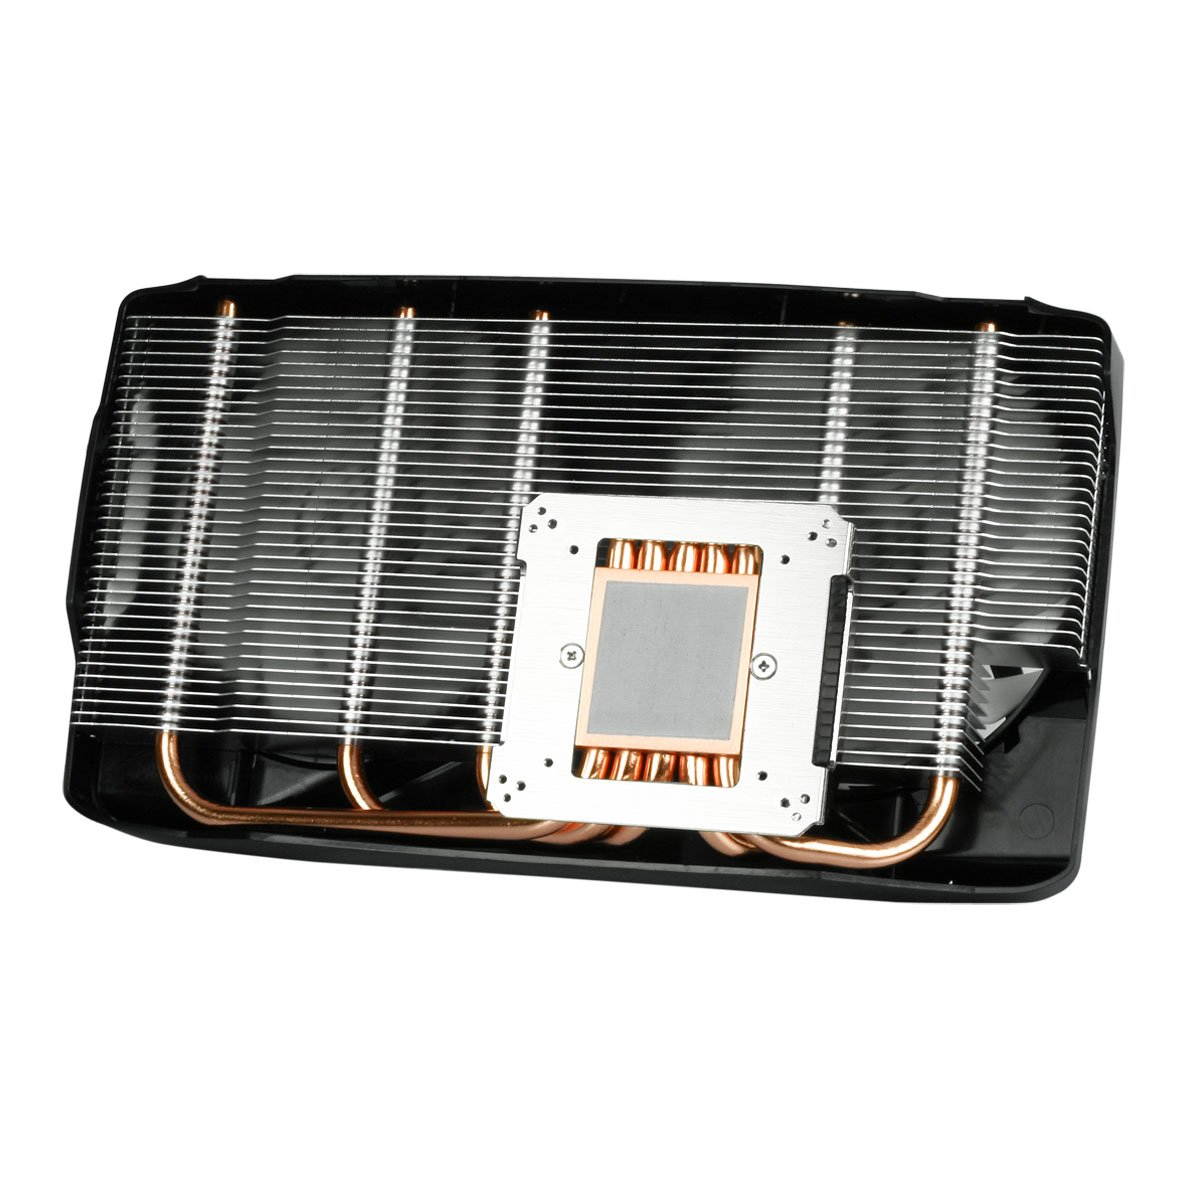 ARCTIC Accelero Twin Turbo III Graphics Card Cooler with Backside Cooler for Efficient RAM, VRM Cooling and VGA Cooler DCACO-V820001-GBA01 by ARCTIC (Image #3)